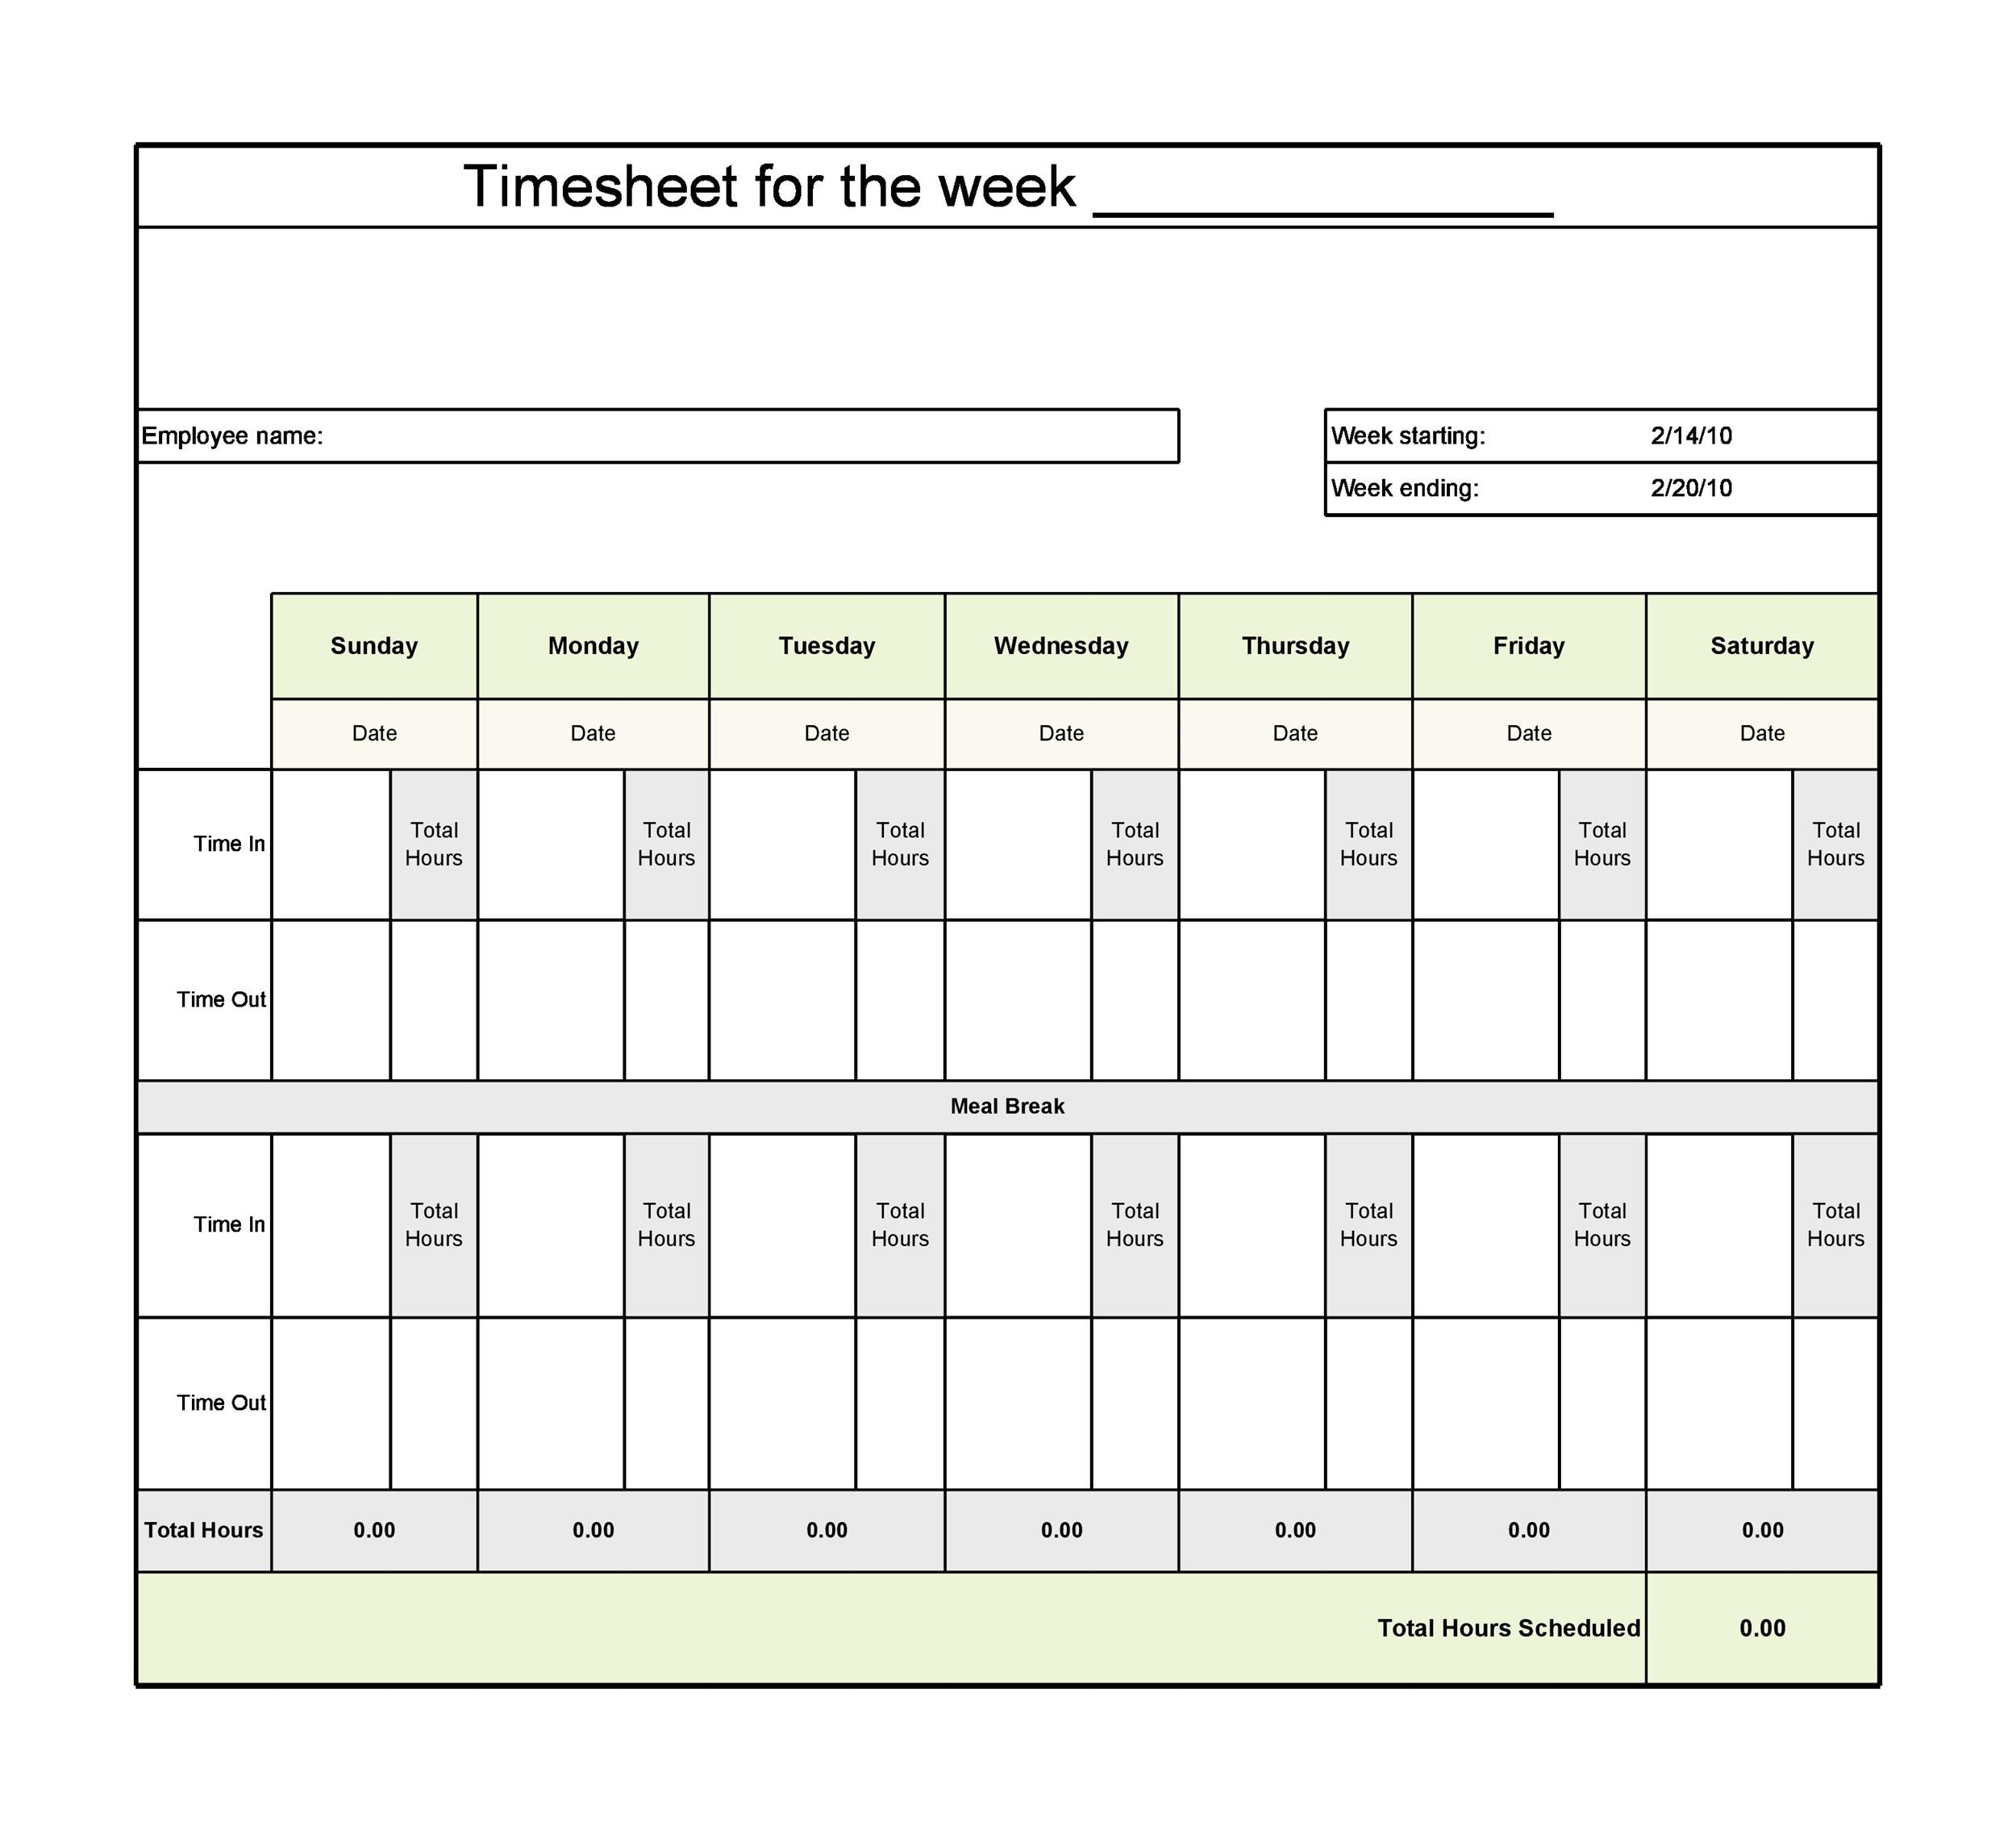 Free Timesheet Time Card Templates Template Lab - Free editable punch card template